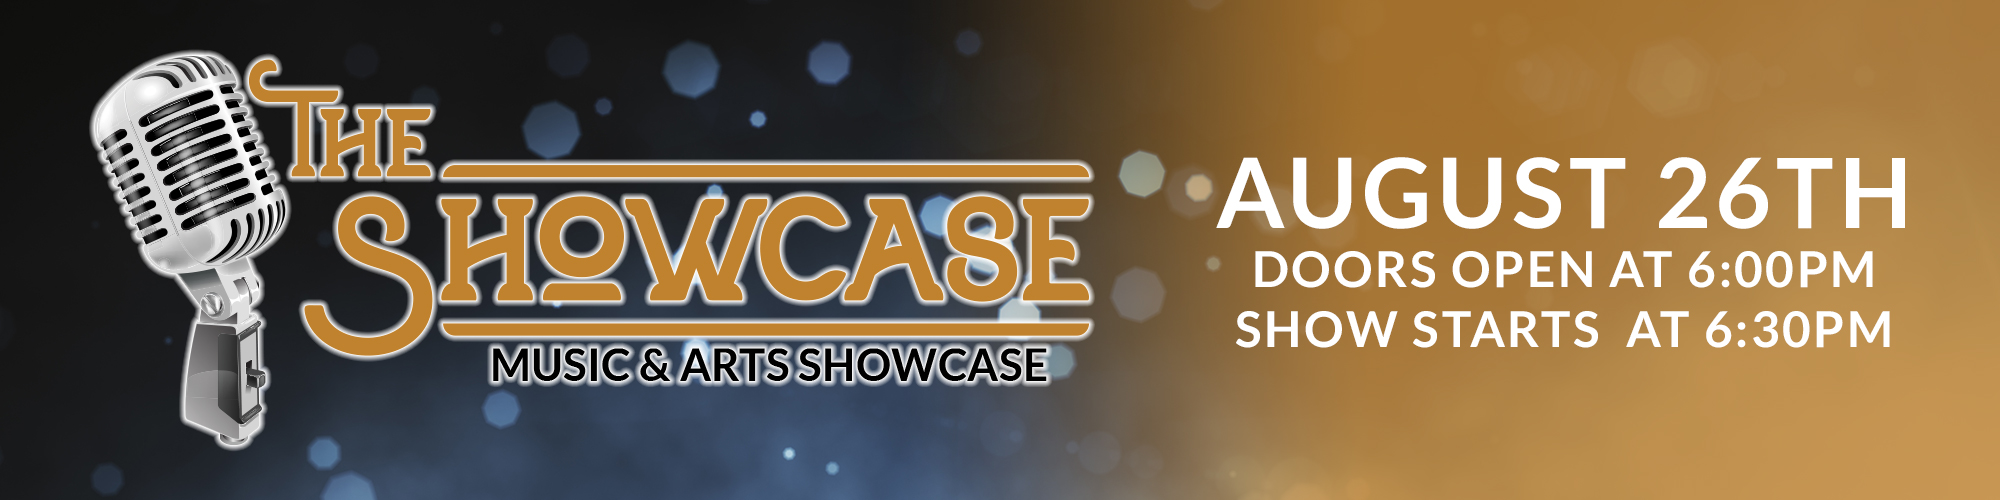 The-Showcase-Page.jpg